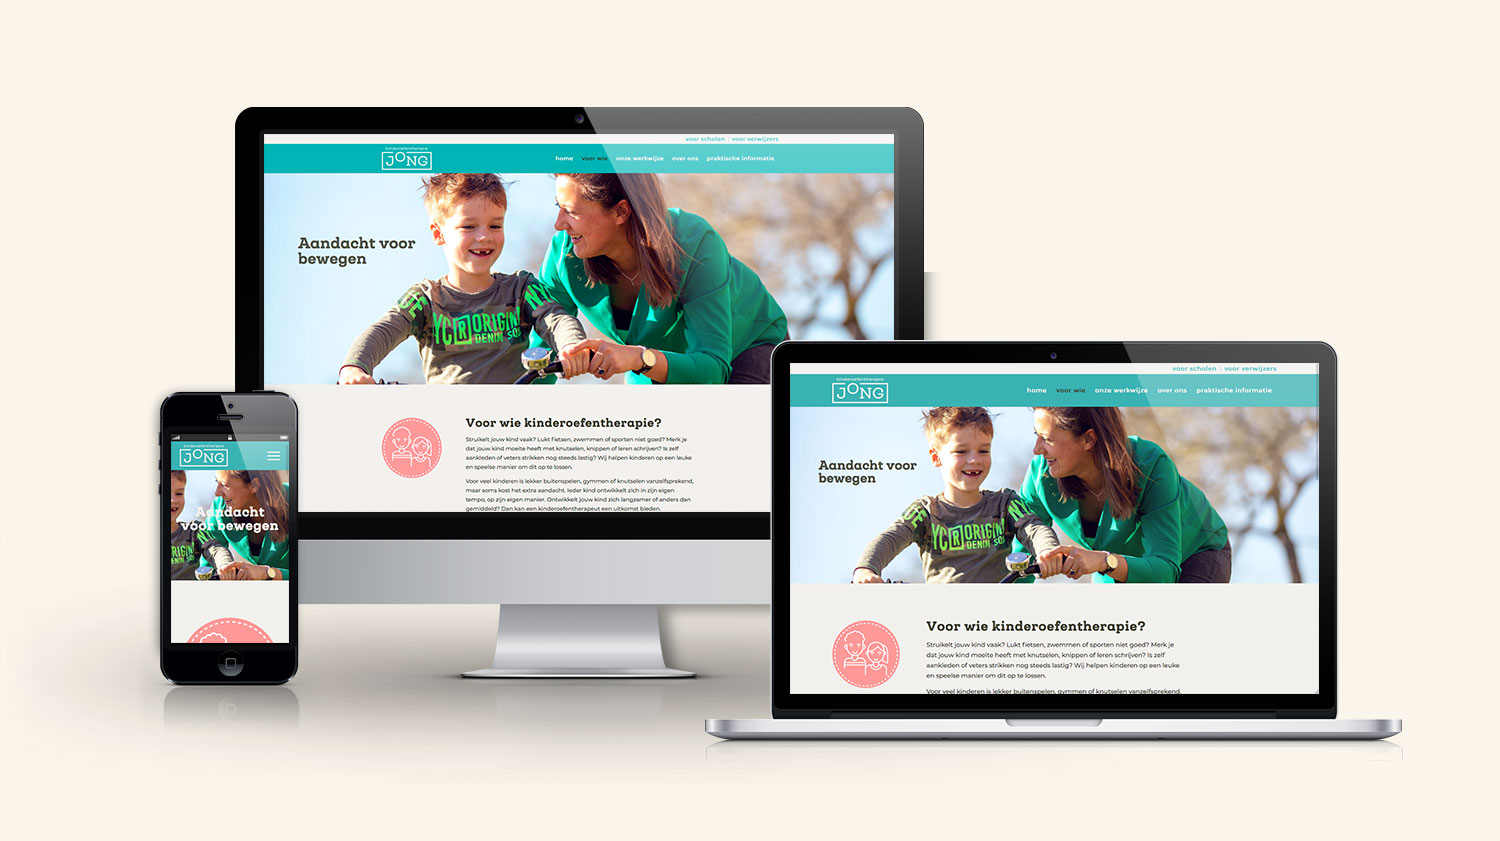 website_KinderoefentherapieJong_voorwie